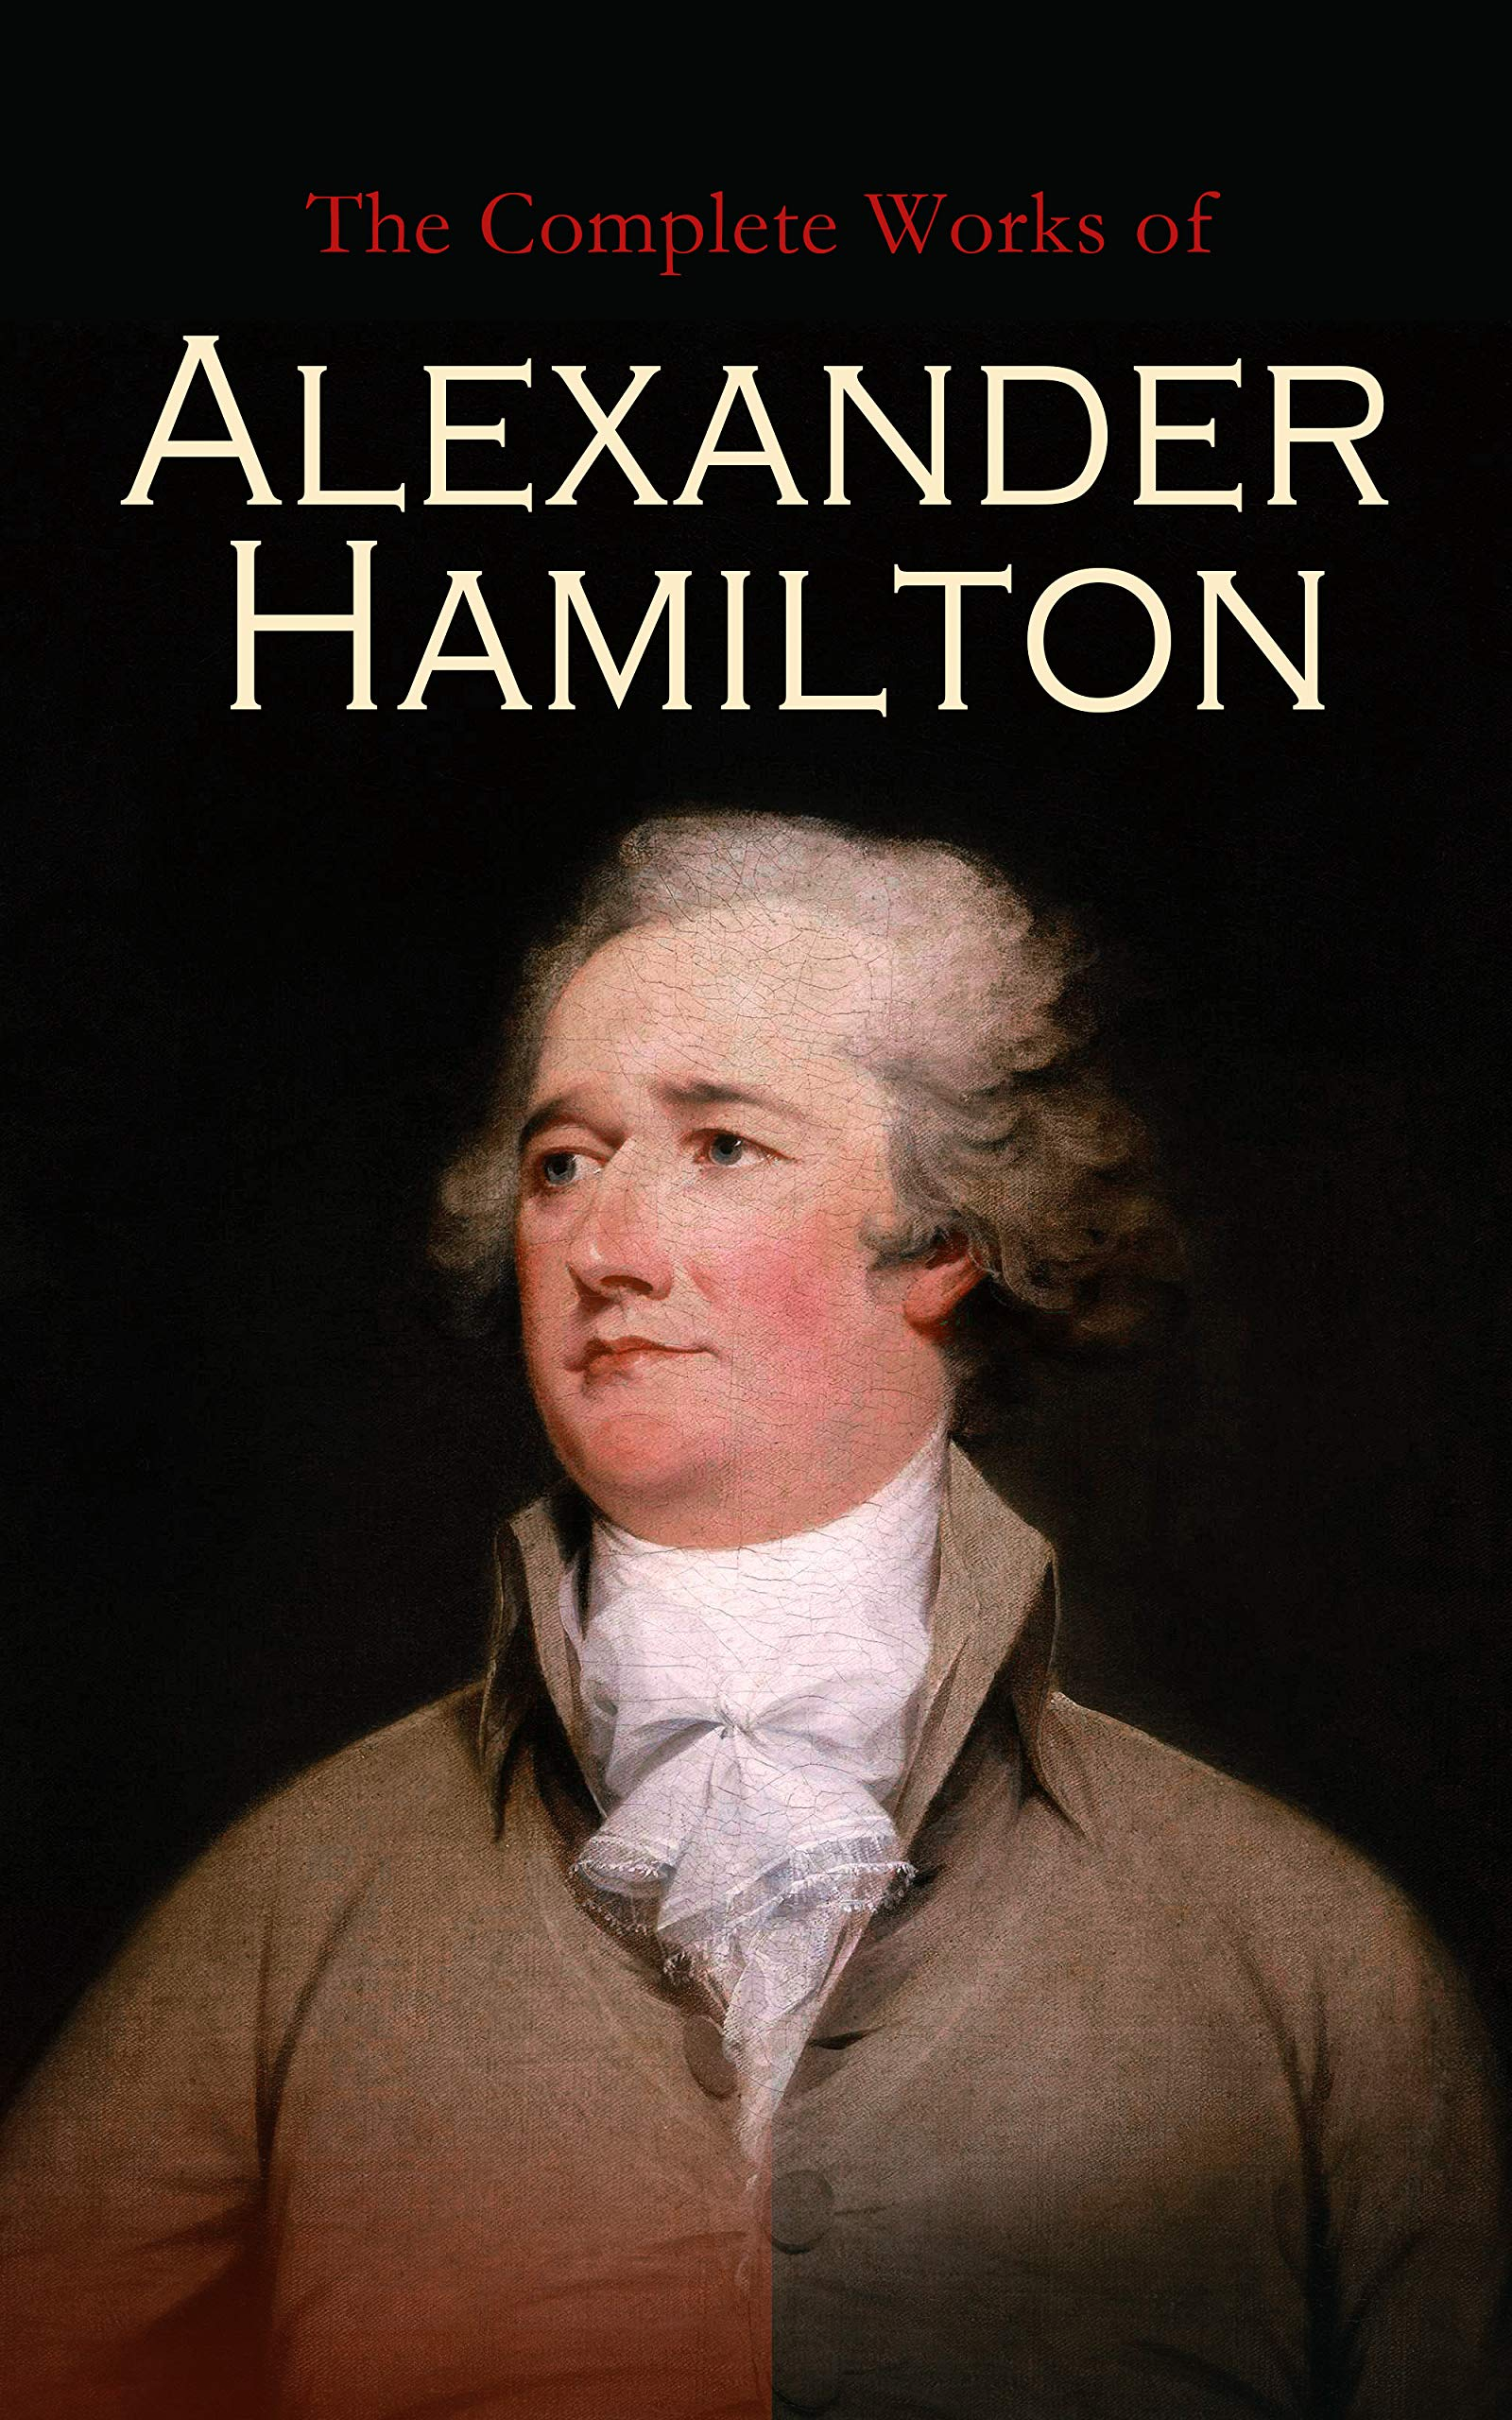 The Complete Works of Alexander Hamilton: The Federalist Papers, The Continentalist, A Full Vindication, Private Correspondence & Biography